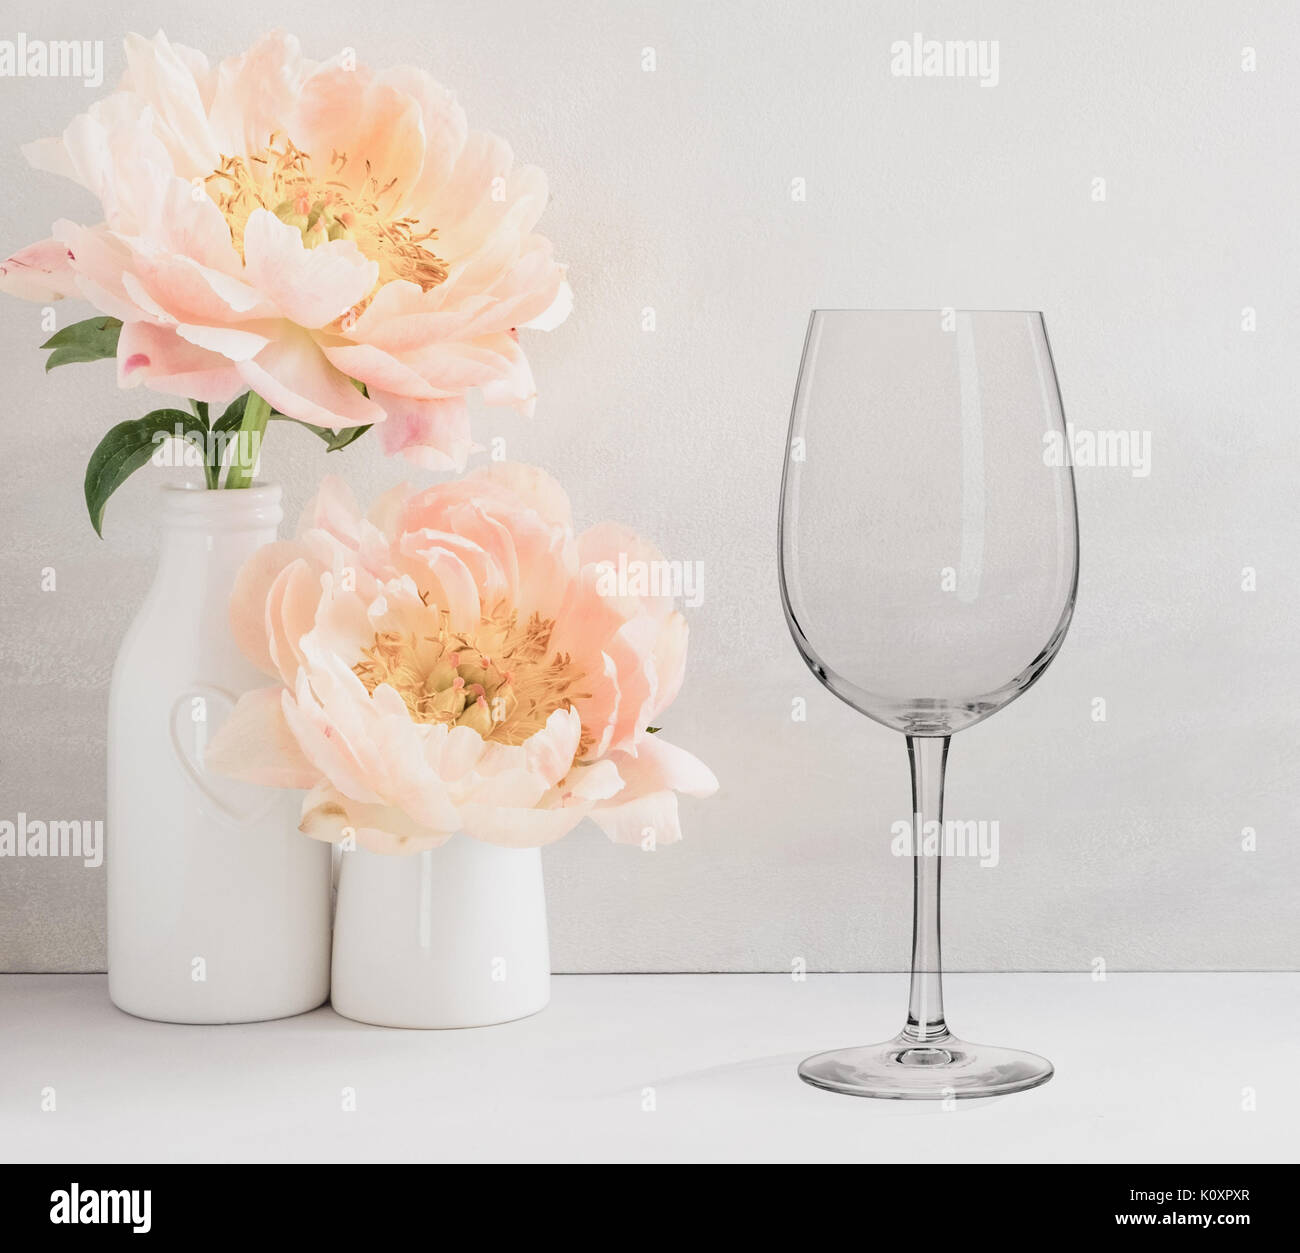 Floral mock-up of 1 wine glass next to a vase of flowers, perfect for businesses who sell decals, vinyl stickers, just overlay your design - Stock Image